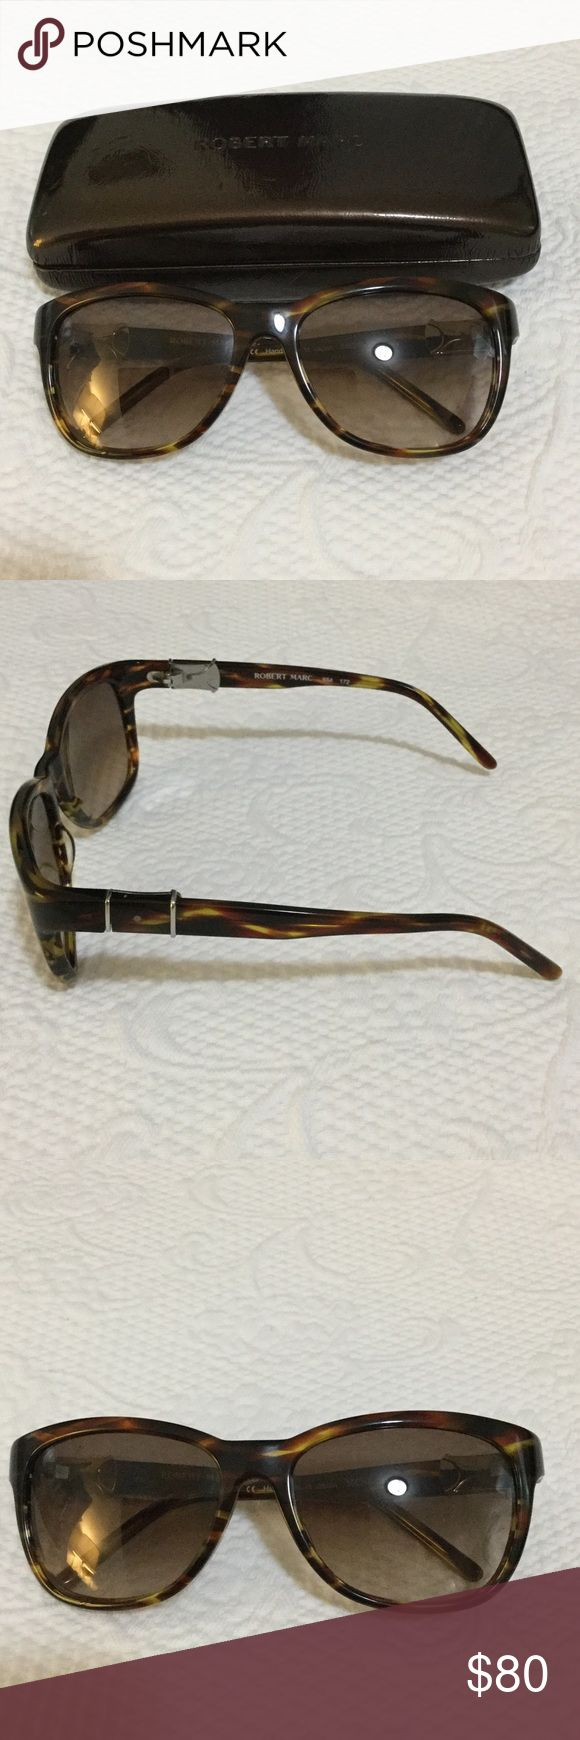 Robert Marc Sunglasses Robert Marc Tortoise Shell Sunglasses- perfect condition Robert Marc Accessories Glasses